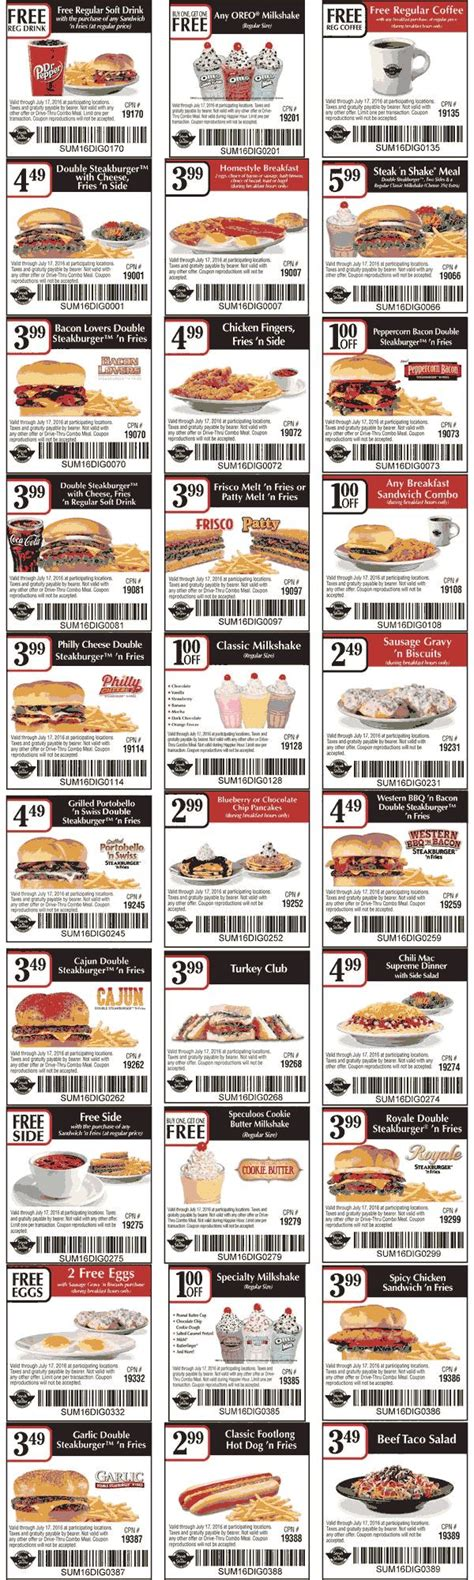 28570 Steak And Shake App Coupons by Pinned June 6th Various Meal Coupons For Steaknshake